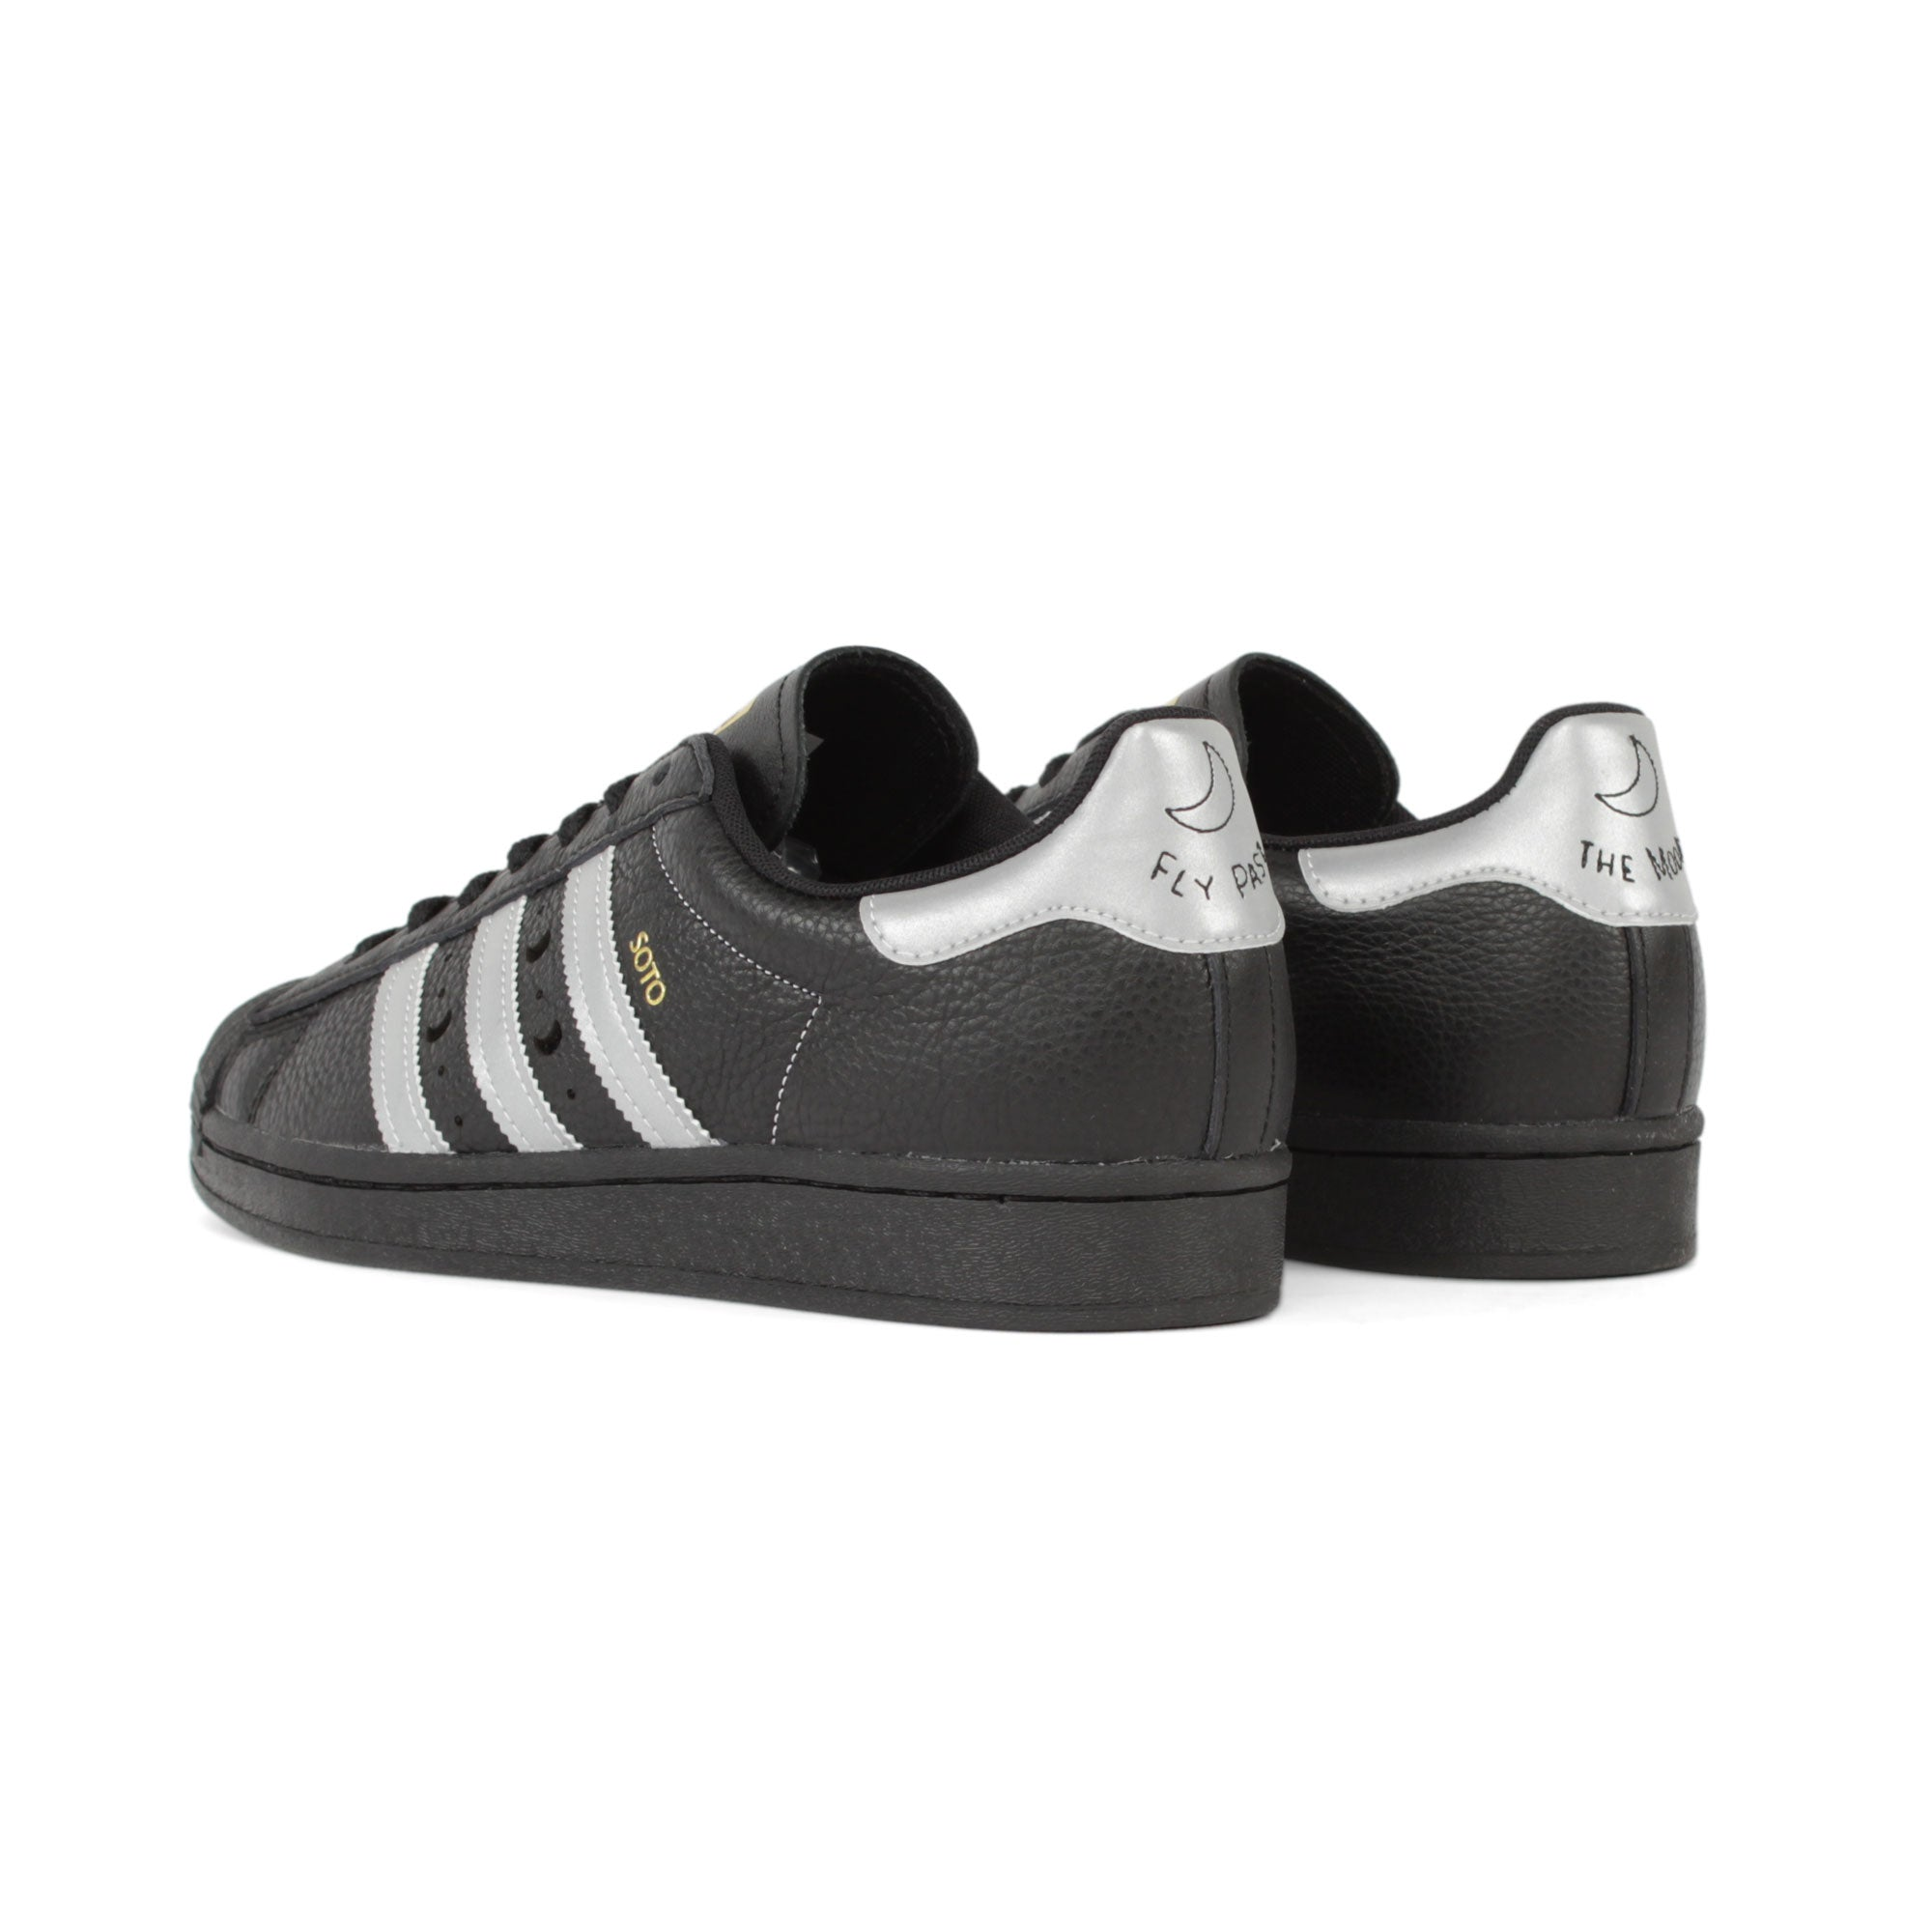 Adidas Superstar ADV x Soto Product Photo #3